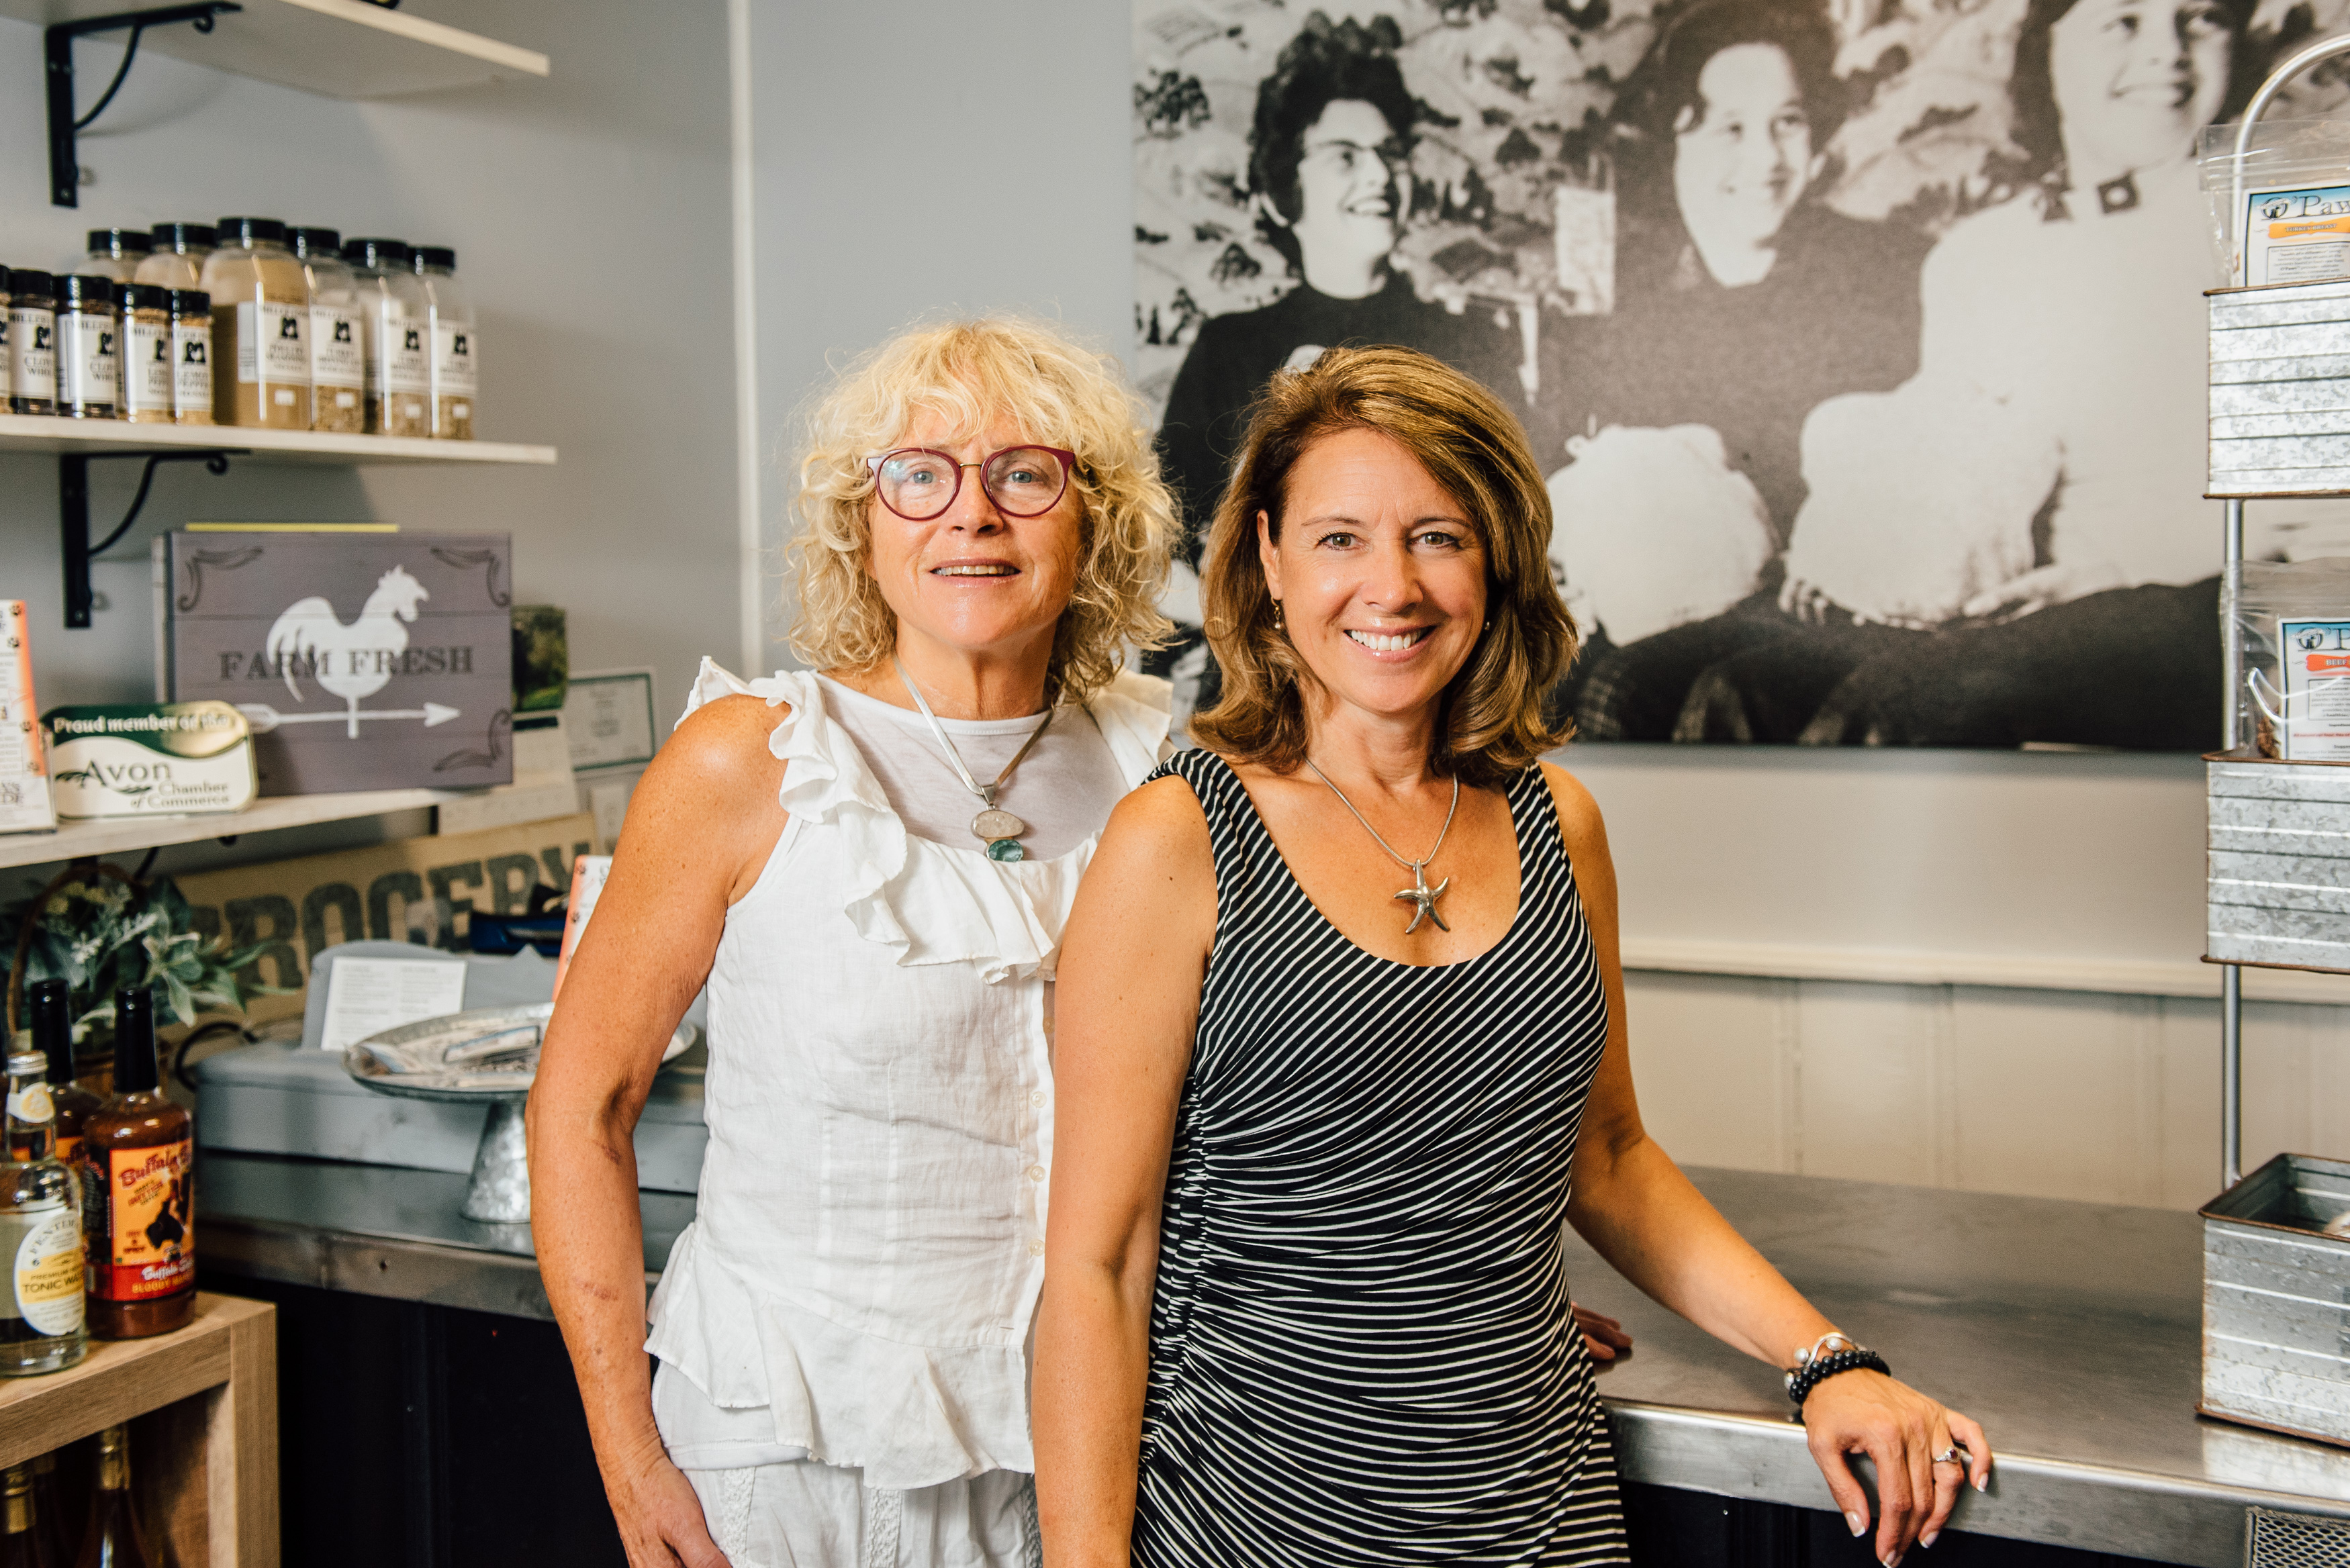 Cal Miller-Stevens, left, and her niece Capri Frank pose for a photo inside the store at Miller Foods Inc., a fourth-generation, family-owned and operated food business located in Avon, Connecticut. Behind them is a photo taken in the early 1960s, in the same location. From left is family matriarch Margaret 'Oma' Miller and her two daughters, Sandi Trudeau (Frank's mother) and Miller-Stevens. (Nathan Oldham/UConn Photo)